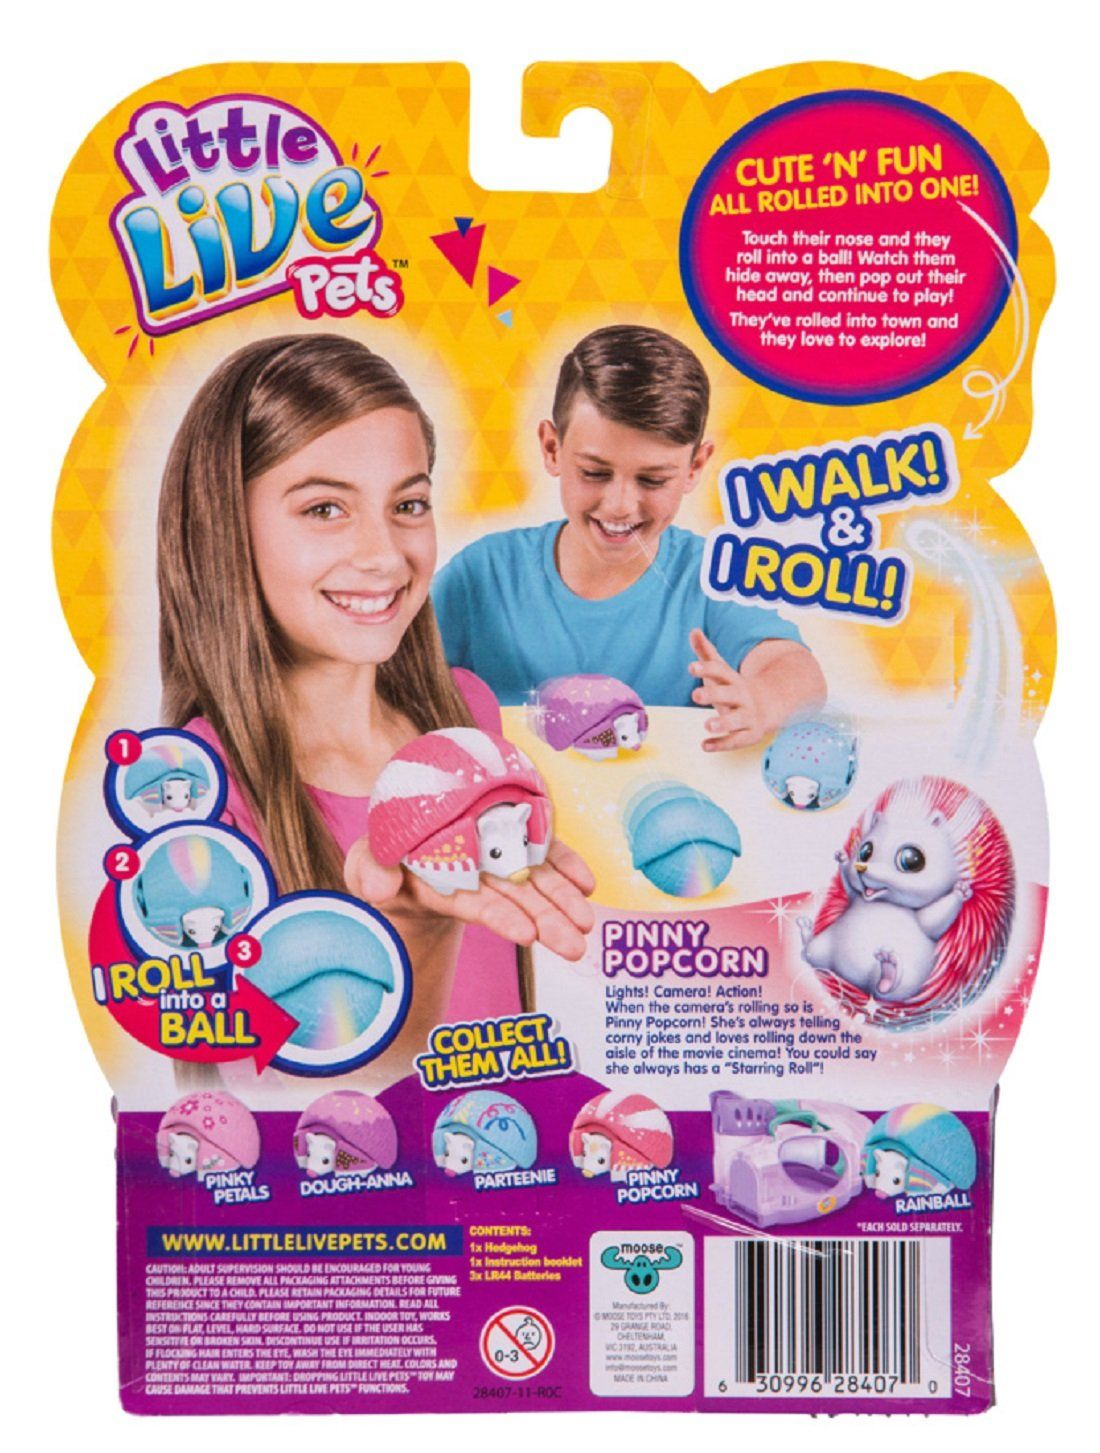 Little Live Pets Hedgehog Pinny Popcorn To Learn More Visit Image Web Link This Is An Affiliate Link Ch Little Live Pets Hedgehog Pet Top Toddler Toys